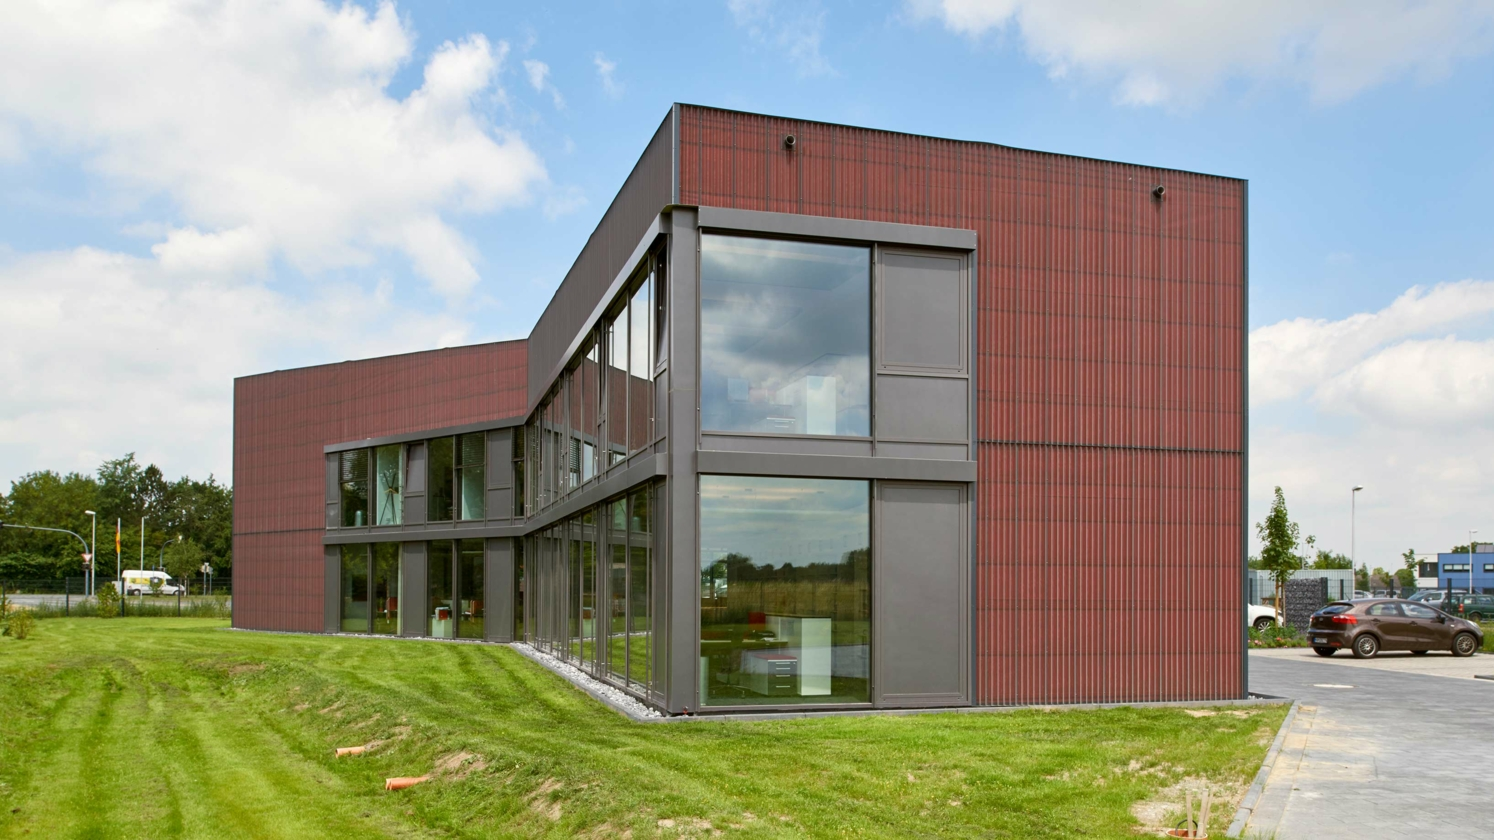 DELTA®-FASSADE COLOR onder open metalen gevel